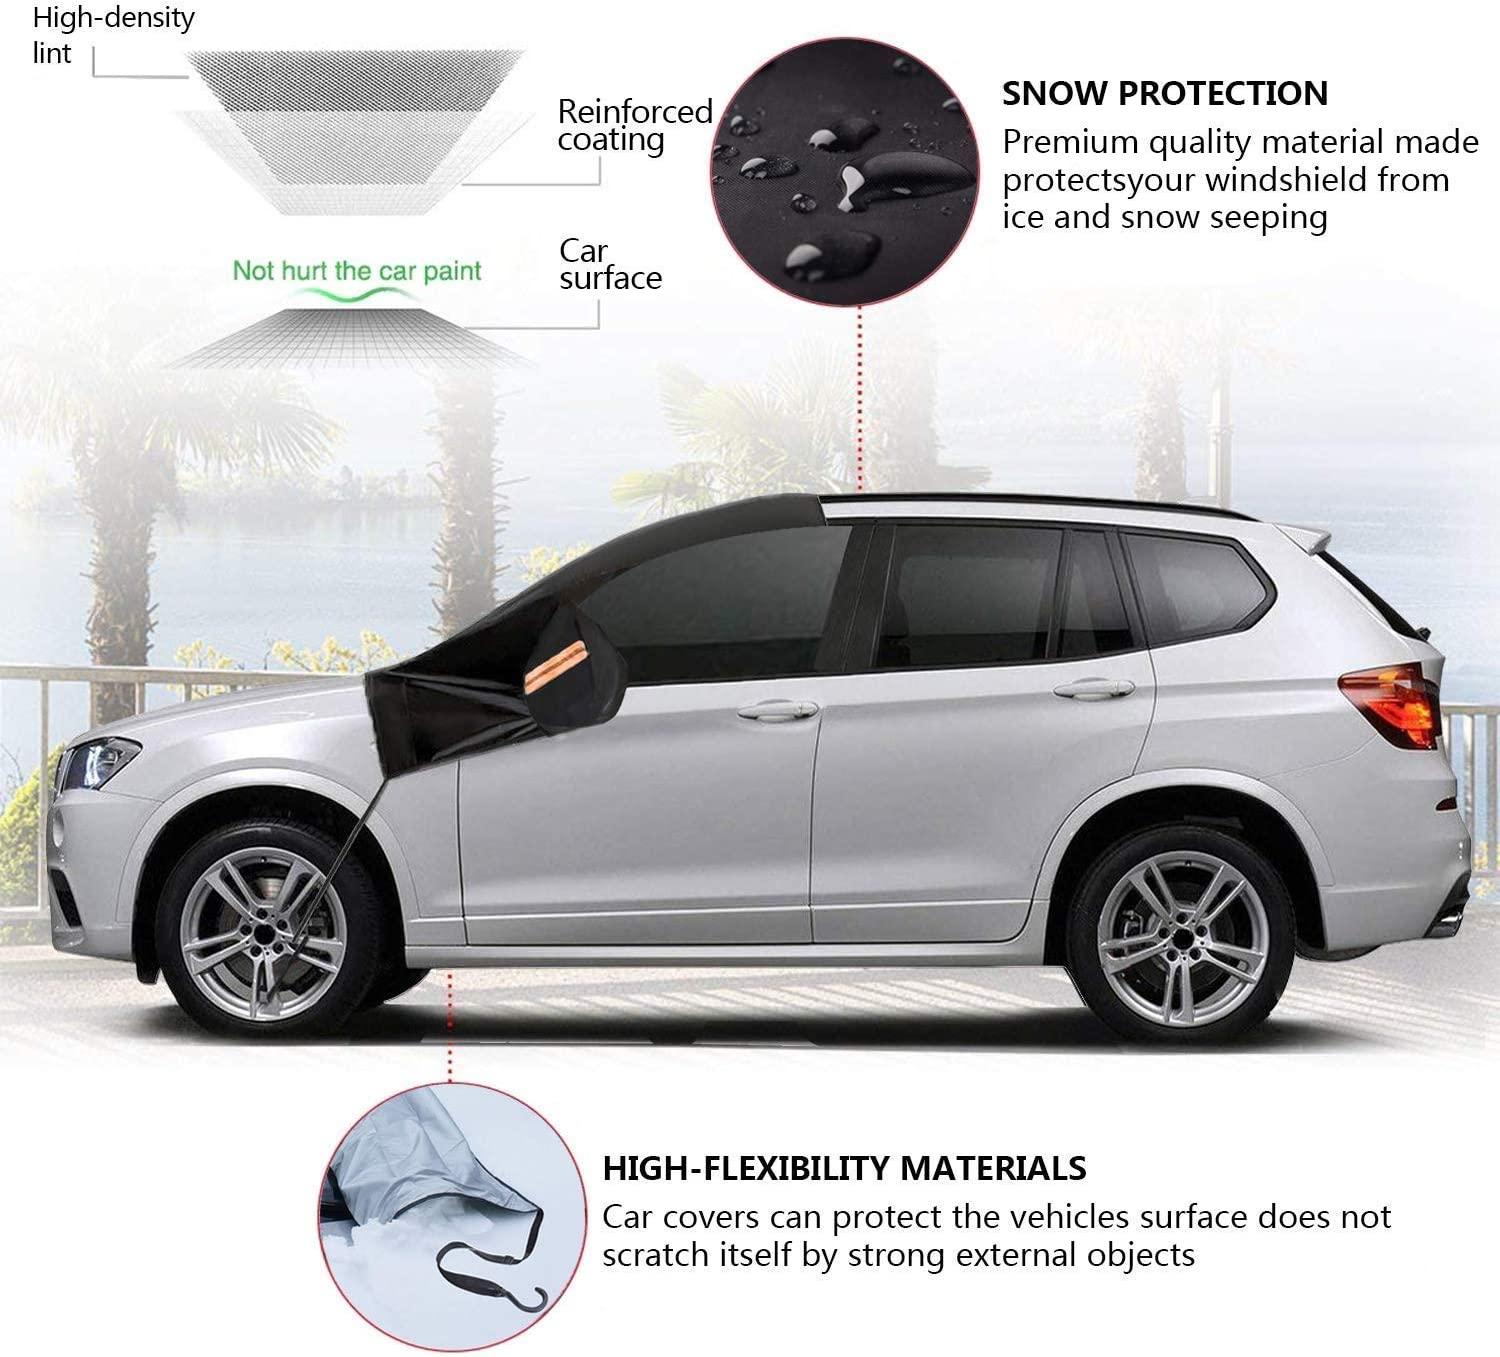 Snow Protection Cover Prevent Resistant Scratching Thin Car Half High Quality